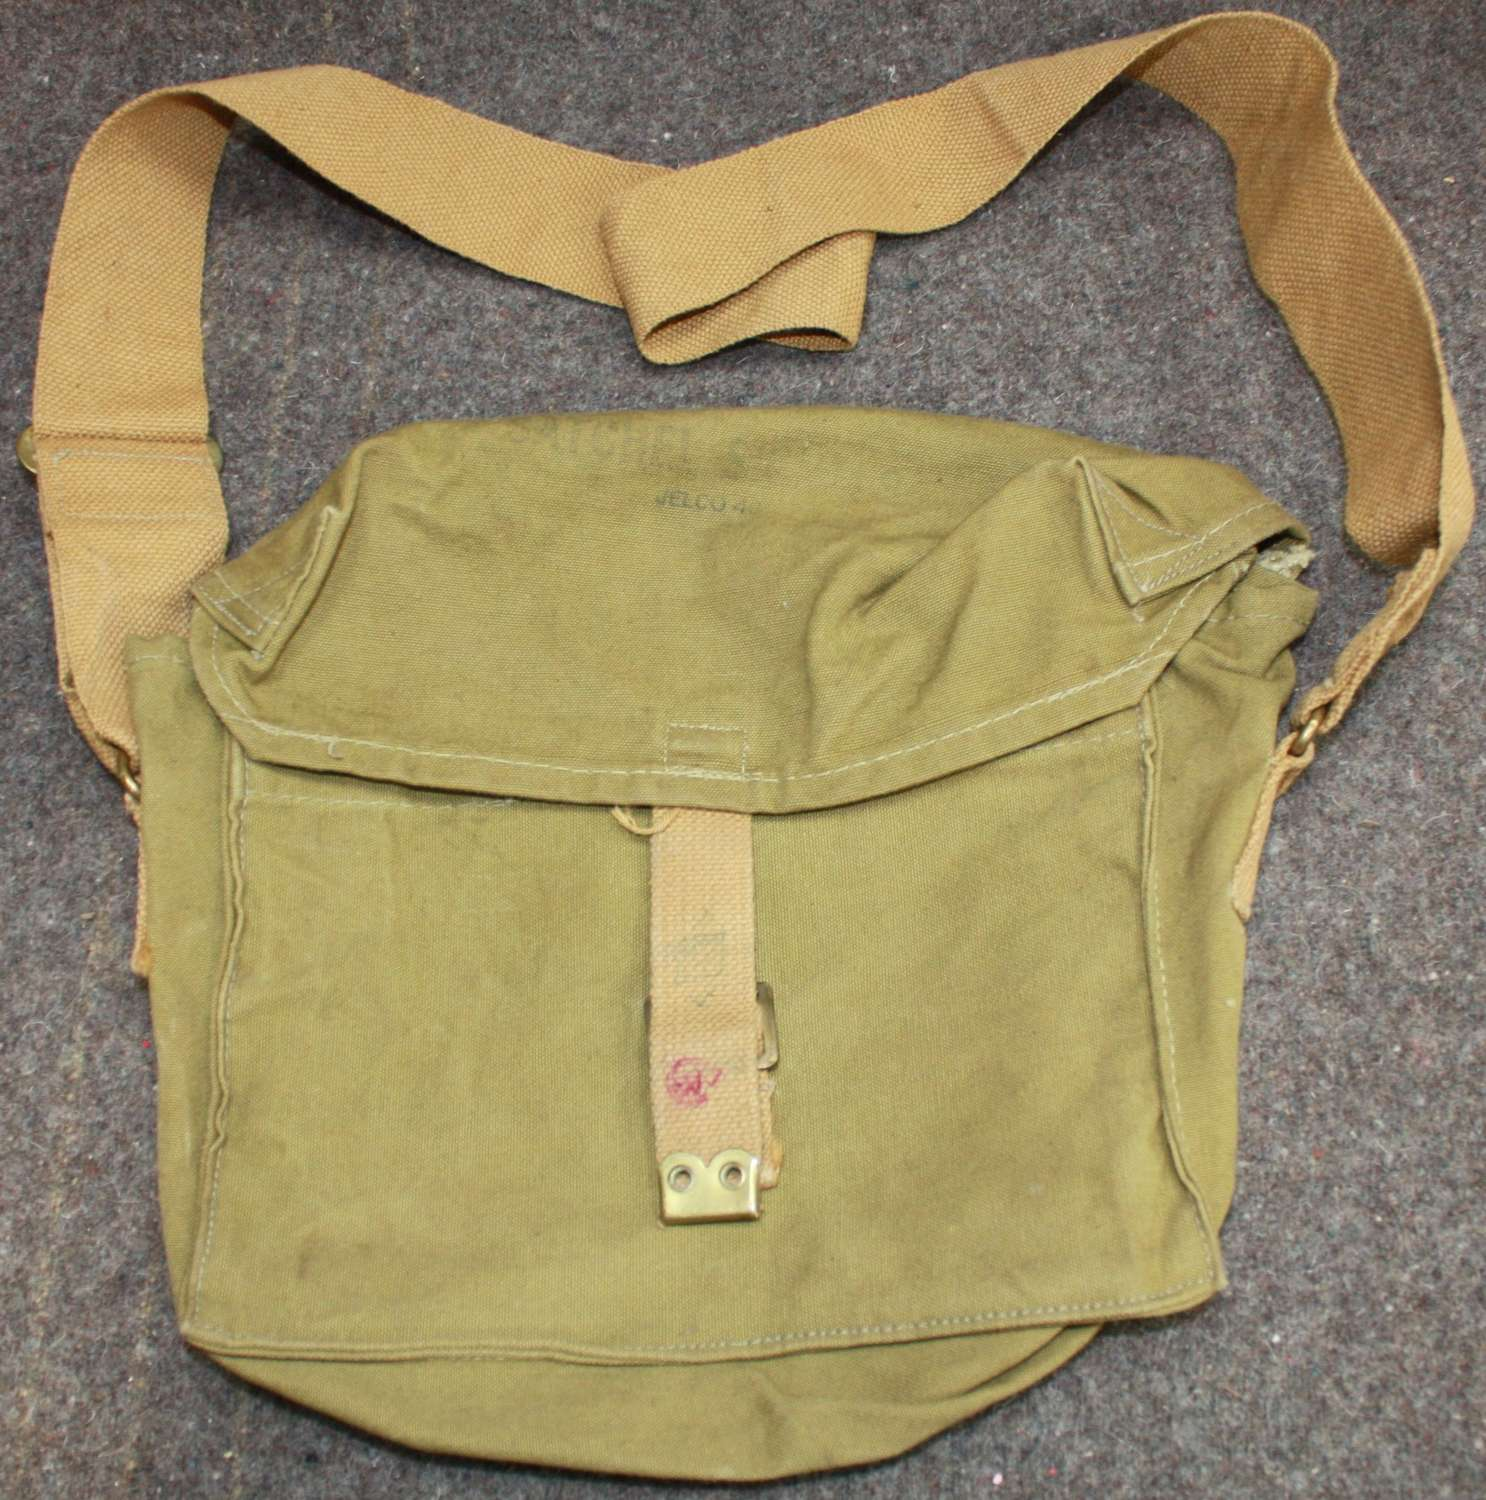 A 1943 DATED CANADIAN SIGNALS SATCHEL